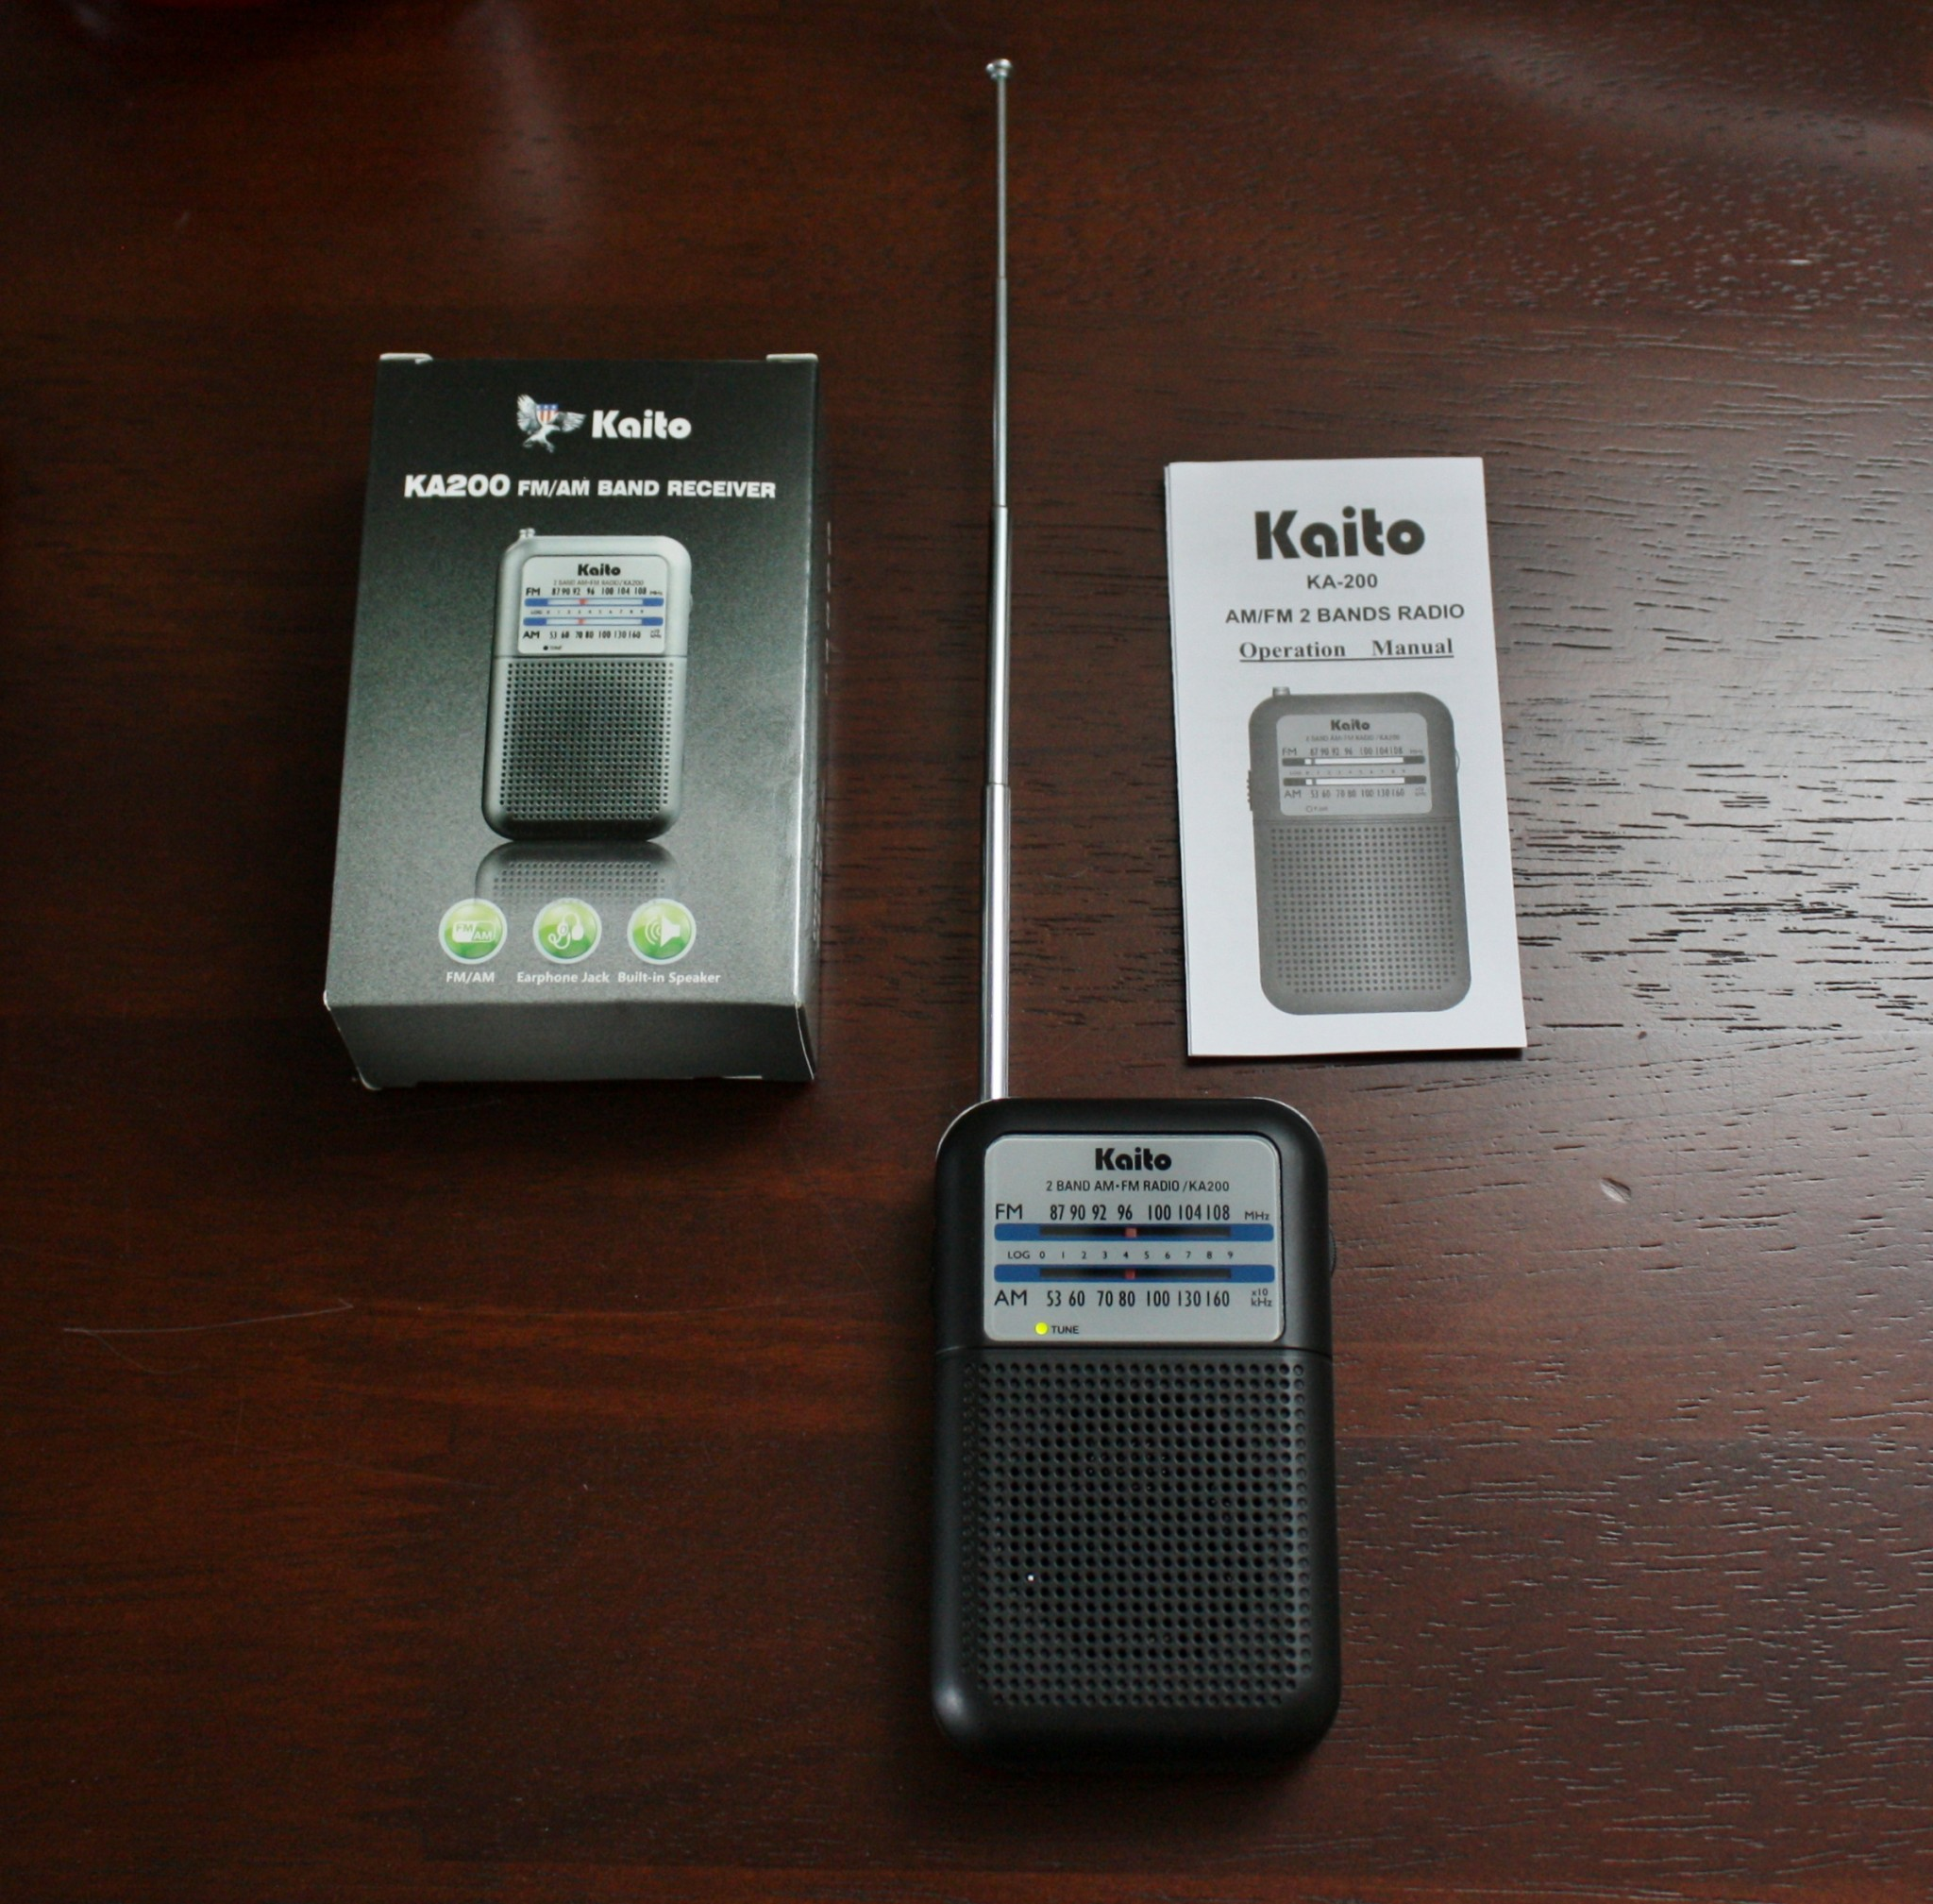 The Kaito KA200 Pocket AM/FM Radio Review – A Blog about